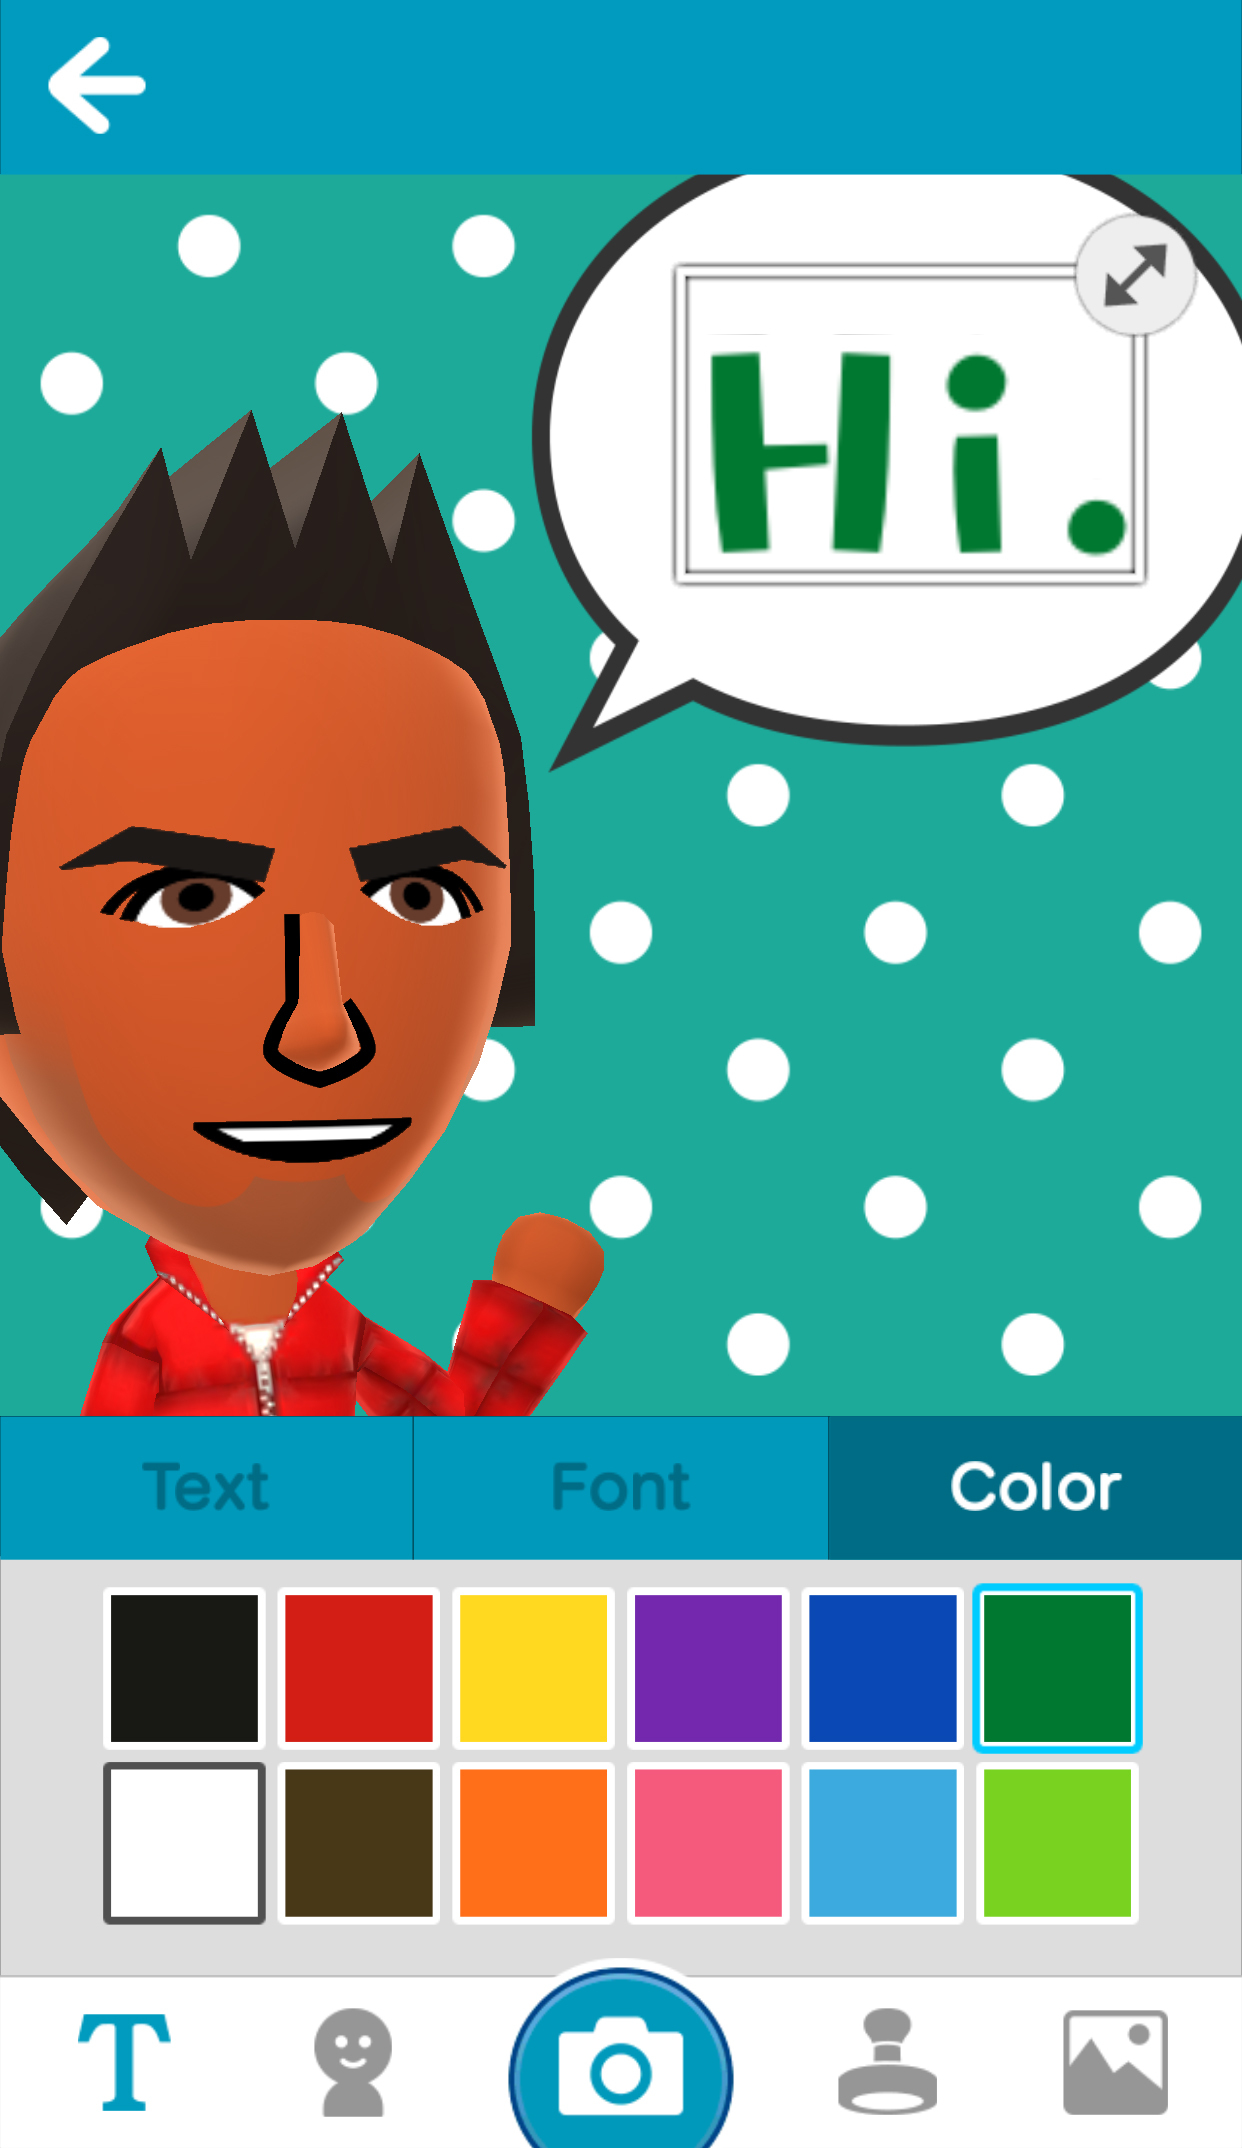 Users create a Mii character and customize facial features like eyes and hair, as well as voice and personality. (Graphic: Business Wire)